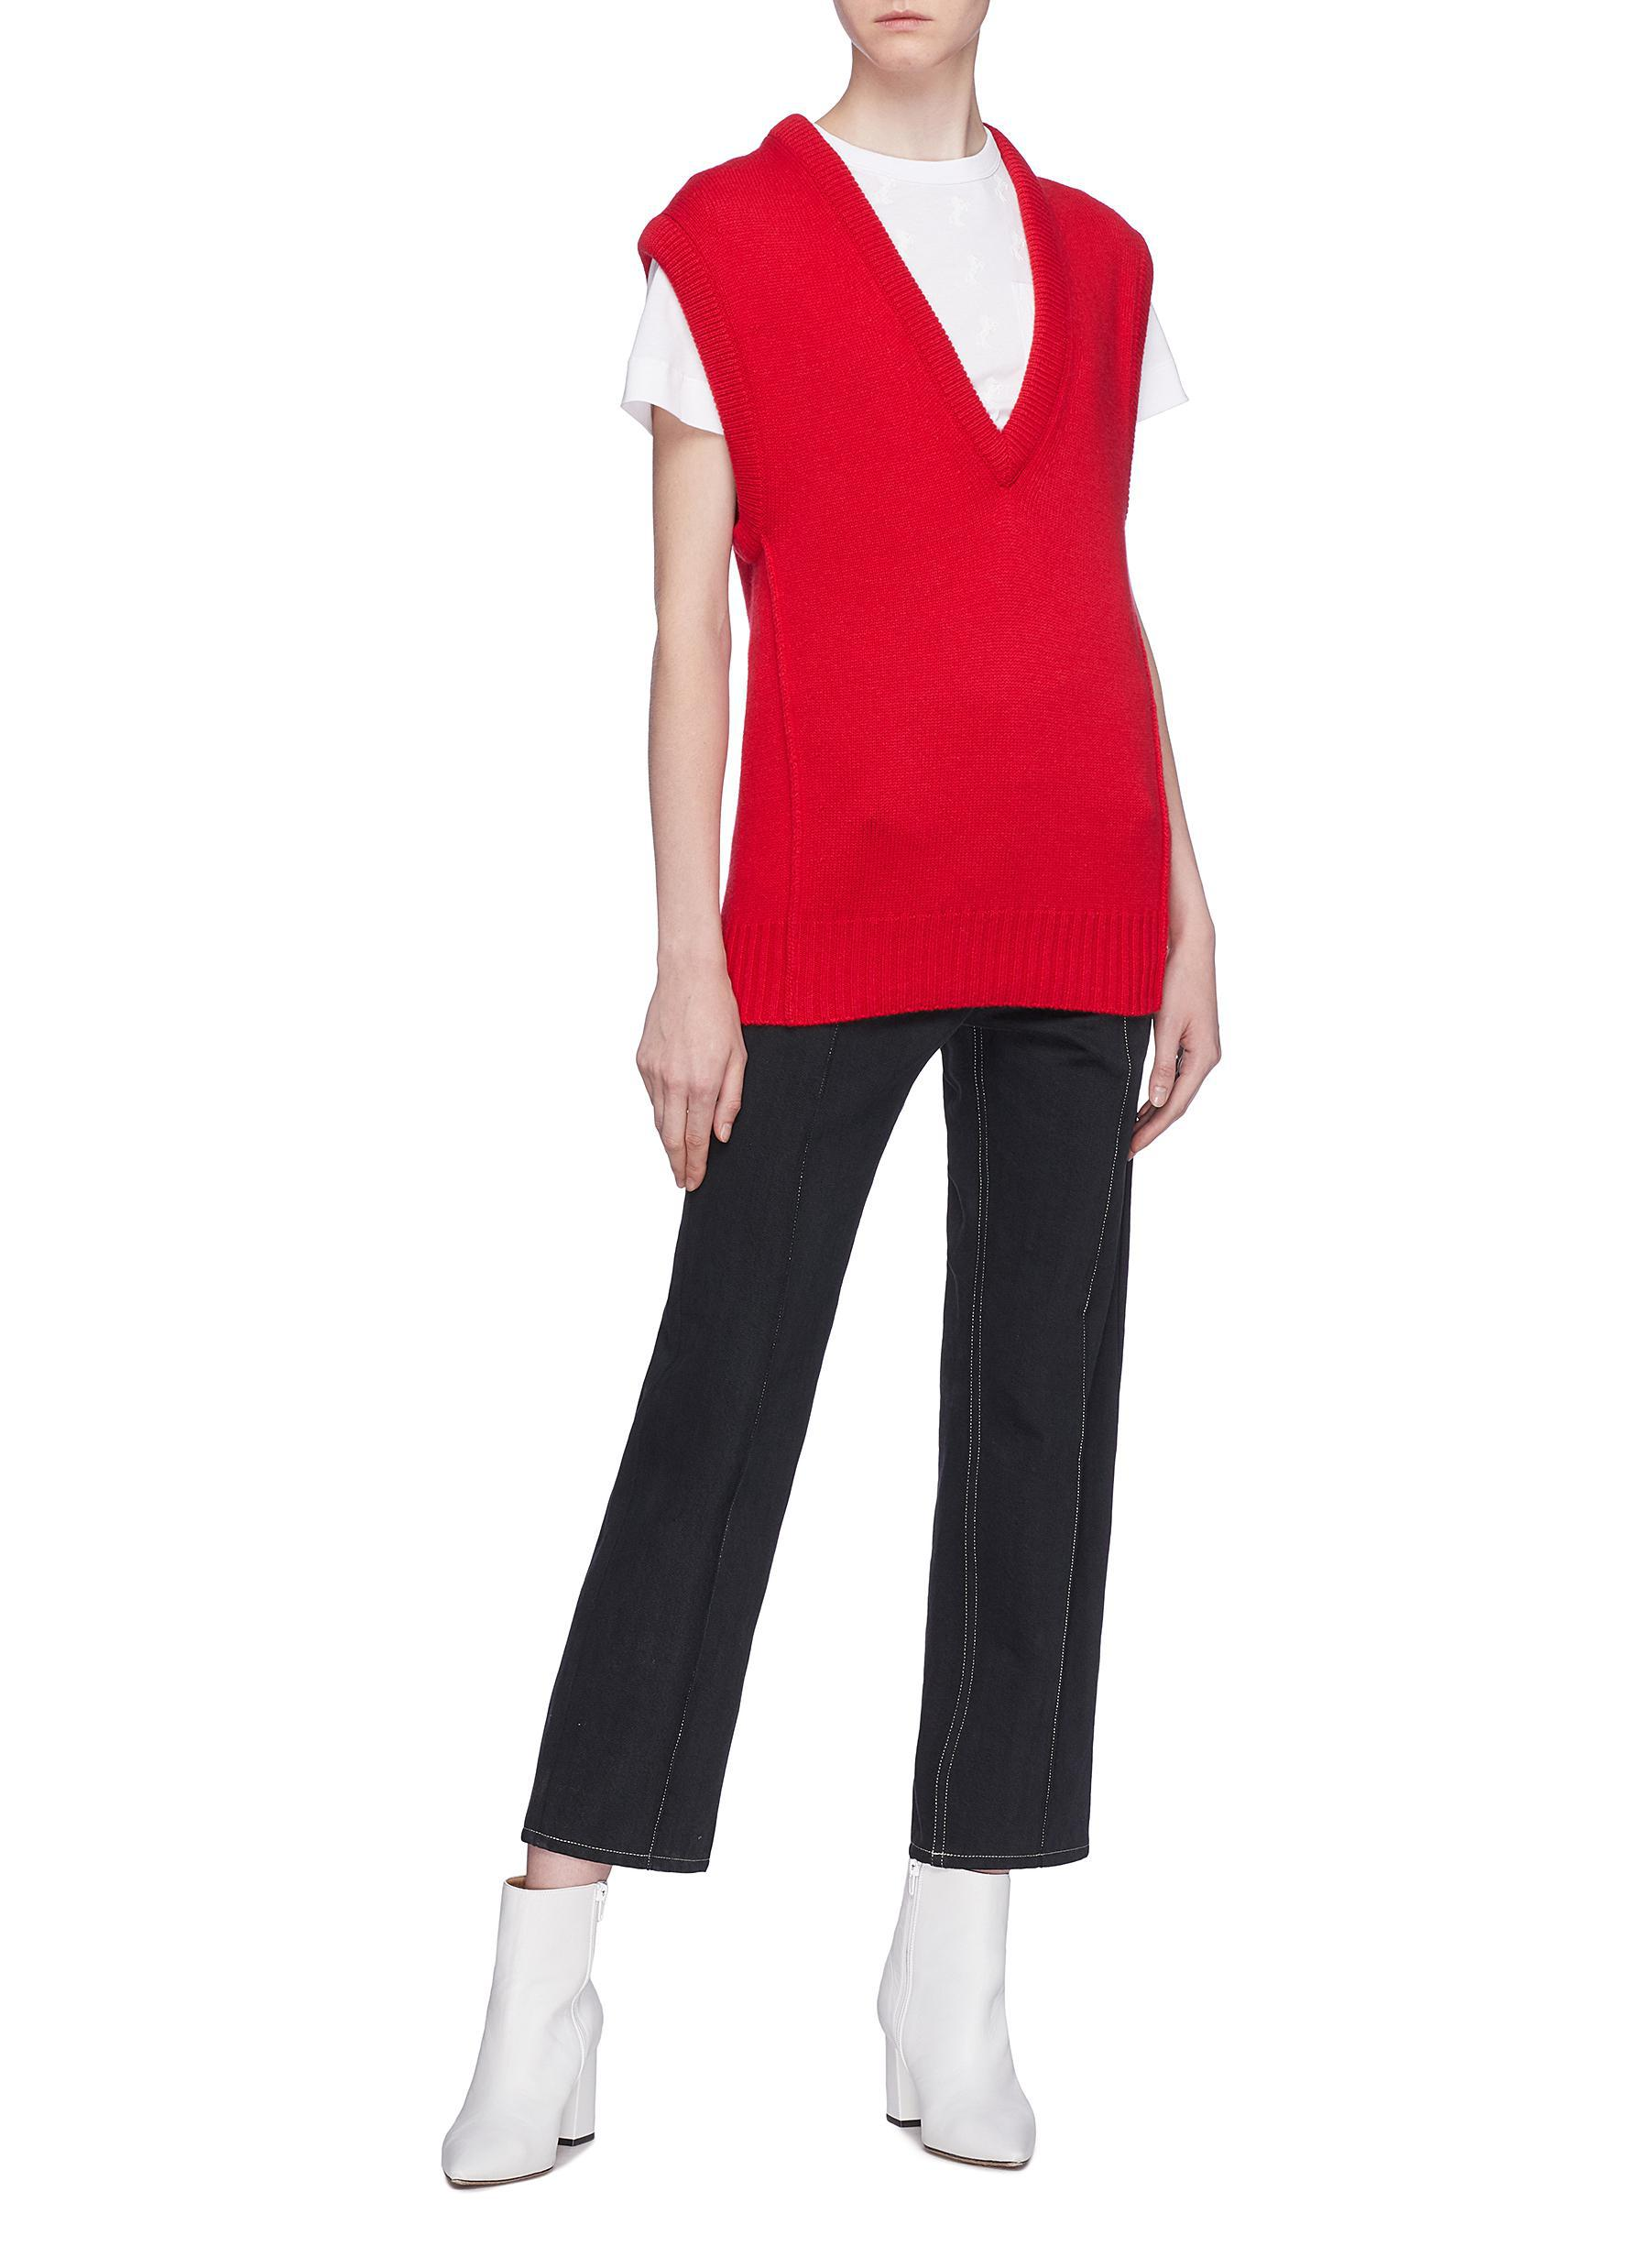 Lyst - Chloé V-neck Cashmere Wool Knit Vest in Red 86bf3fe4f